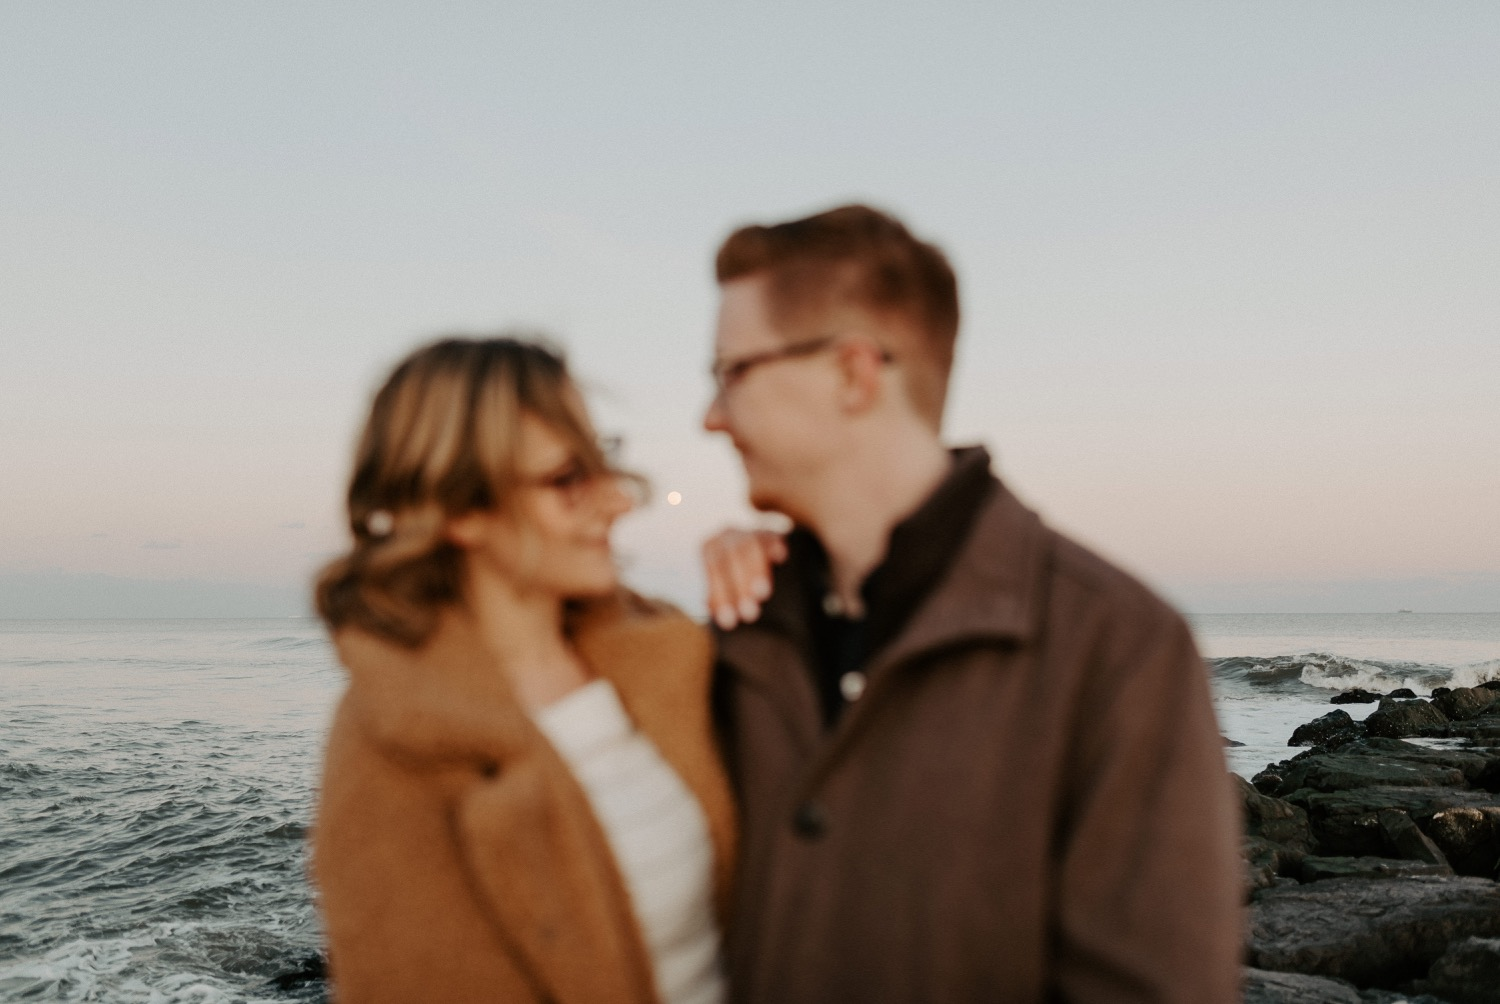 Asbury Park Engagement Photos Winter Beach Engagement Session New Jersey Wedding Photographer Anais Possamai Photography 043